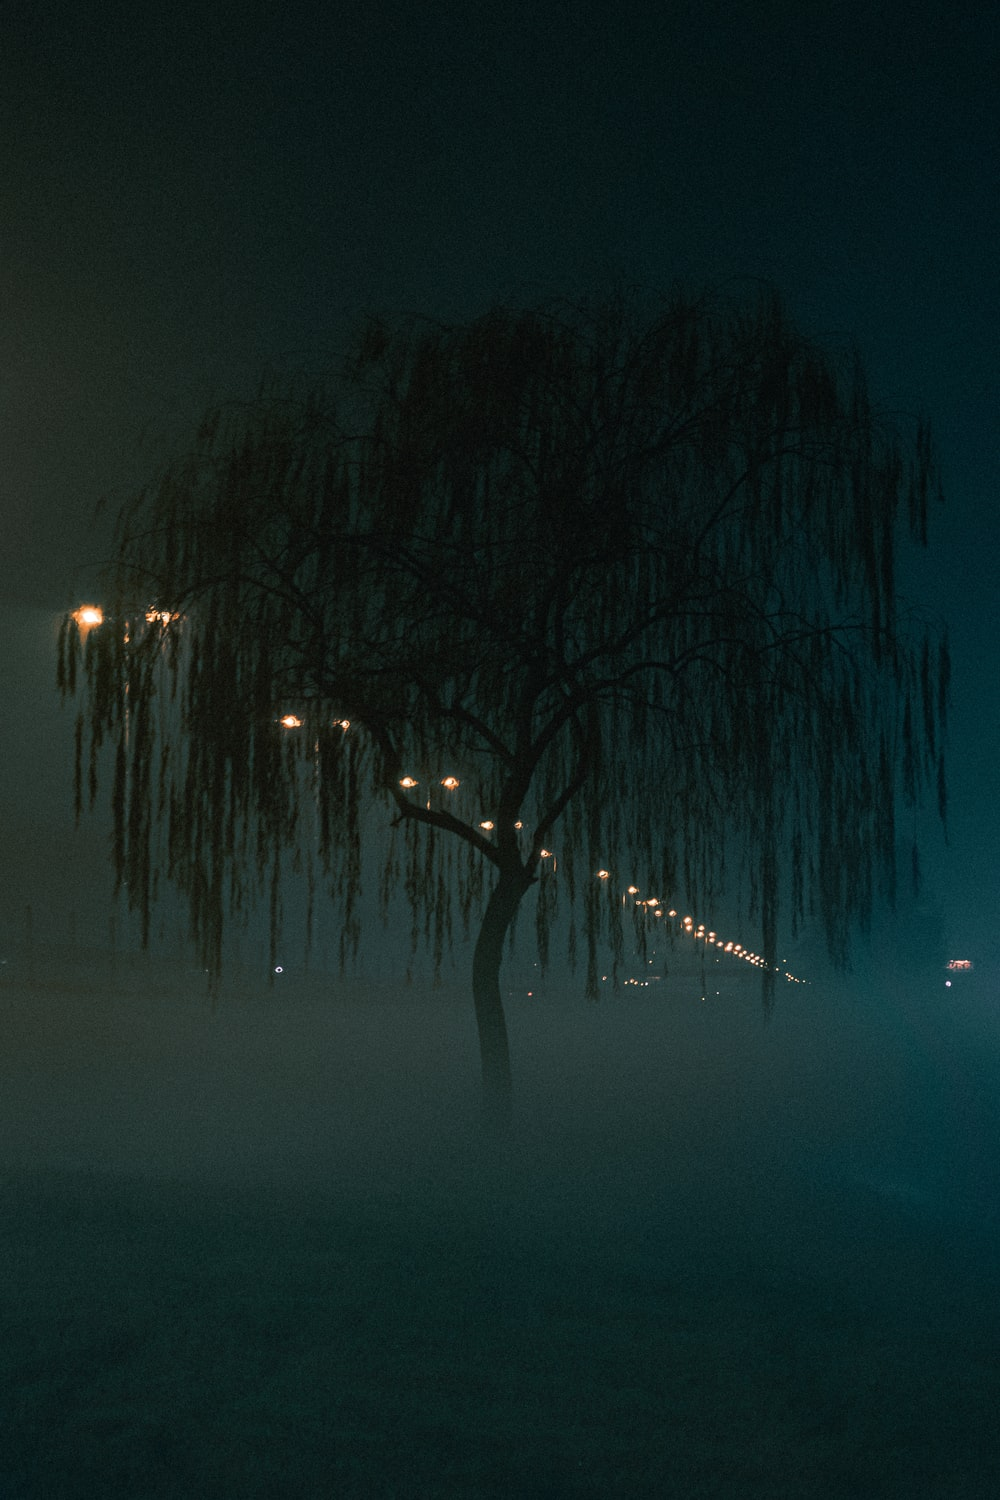 weeping willow in fogs